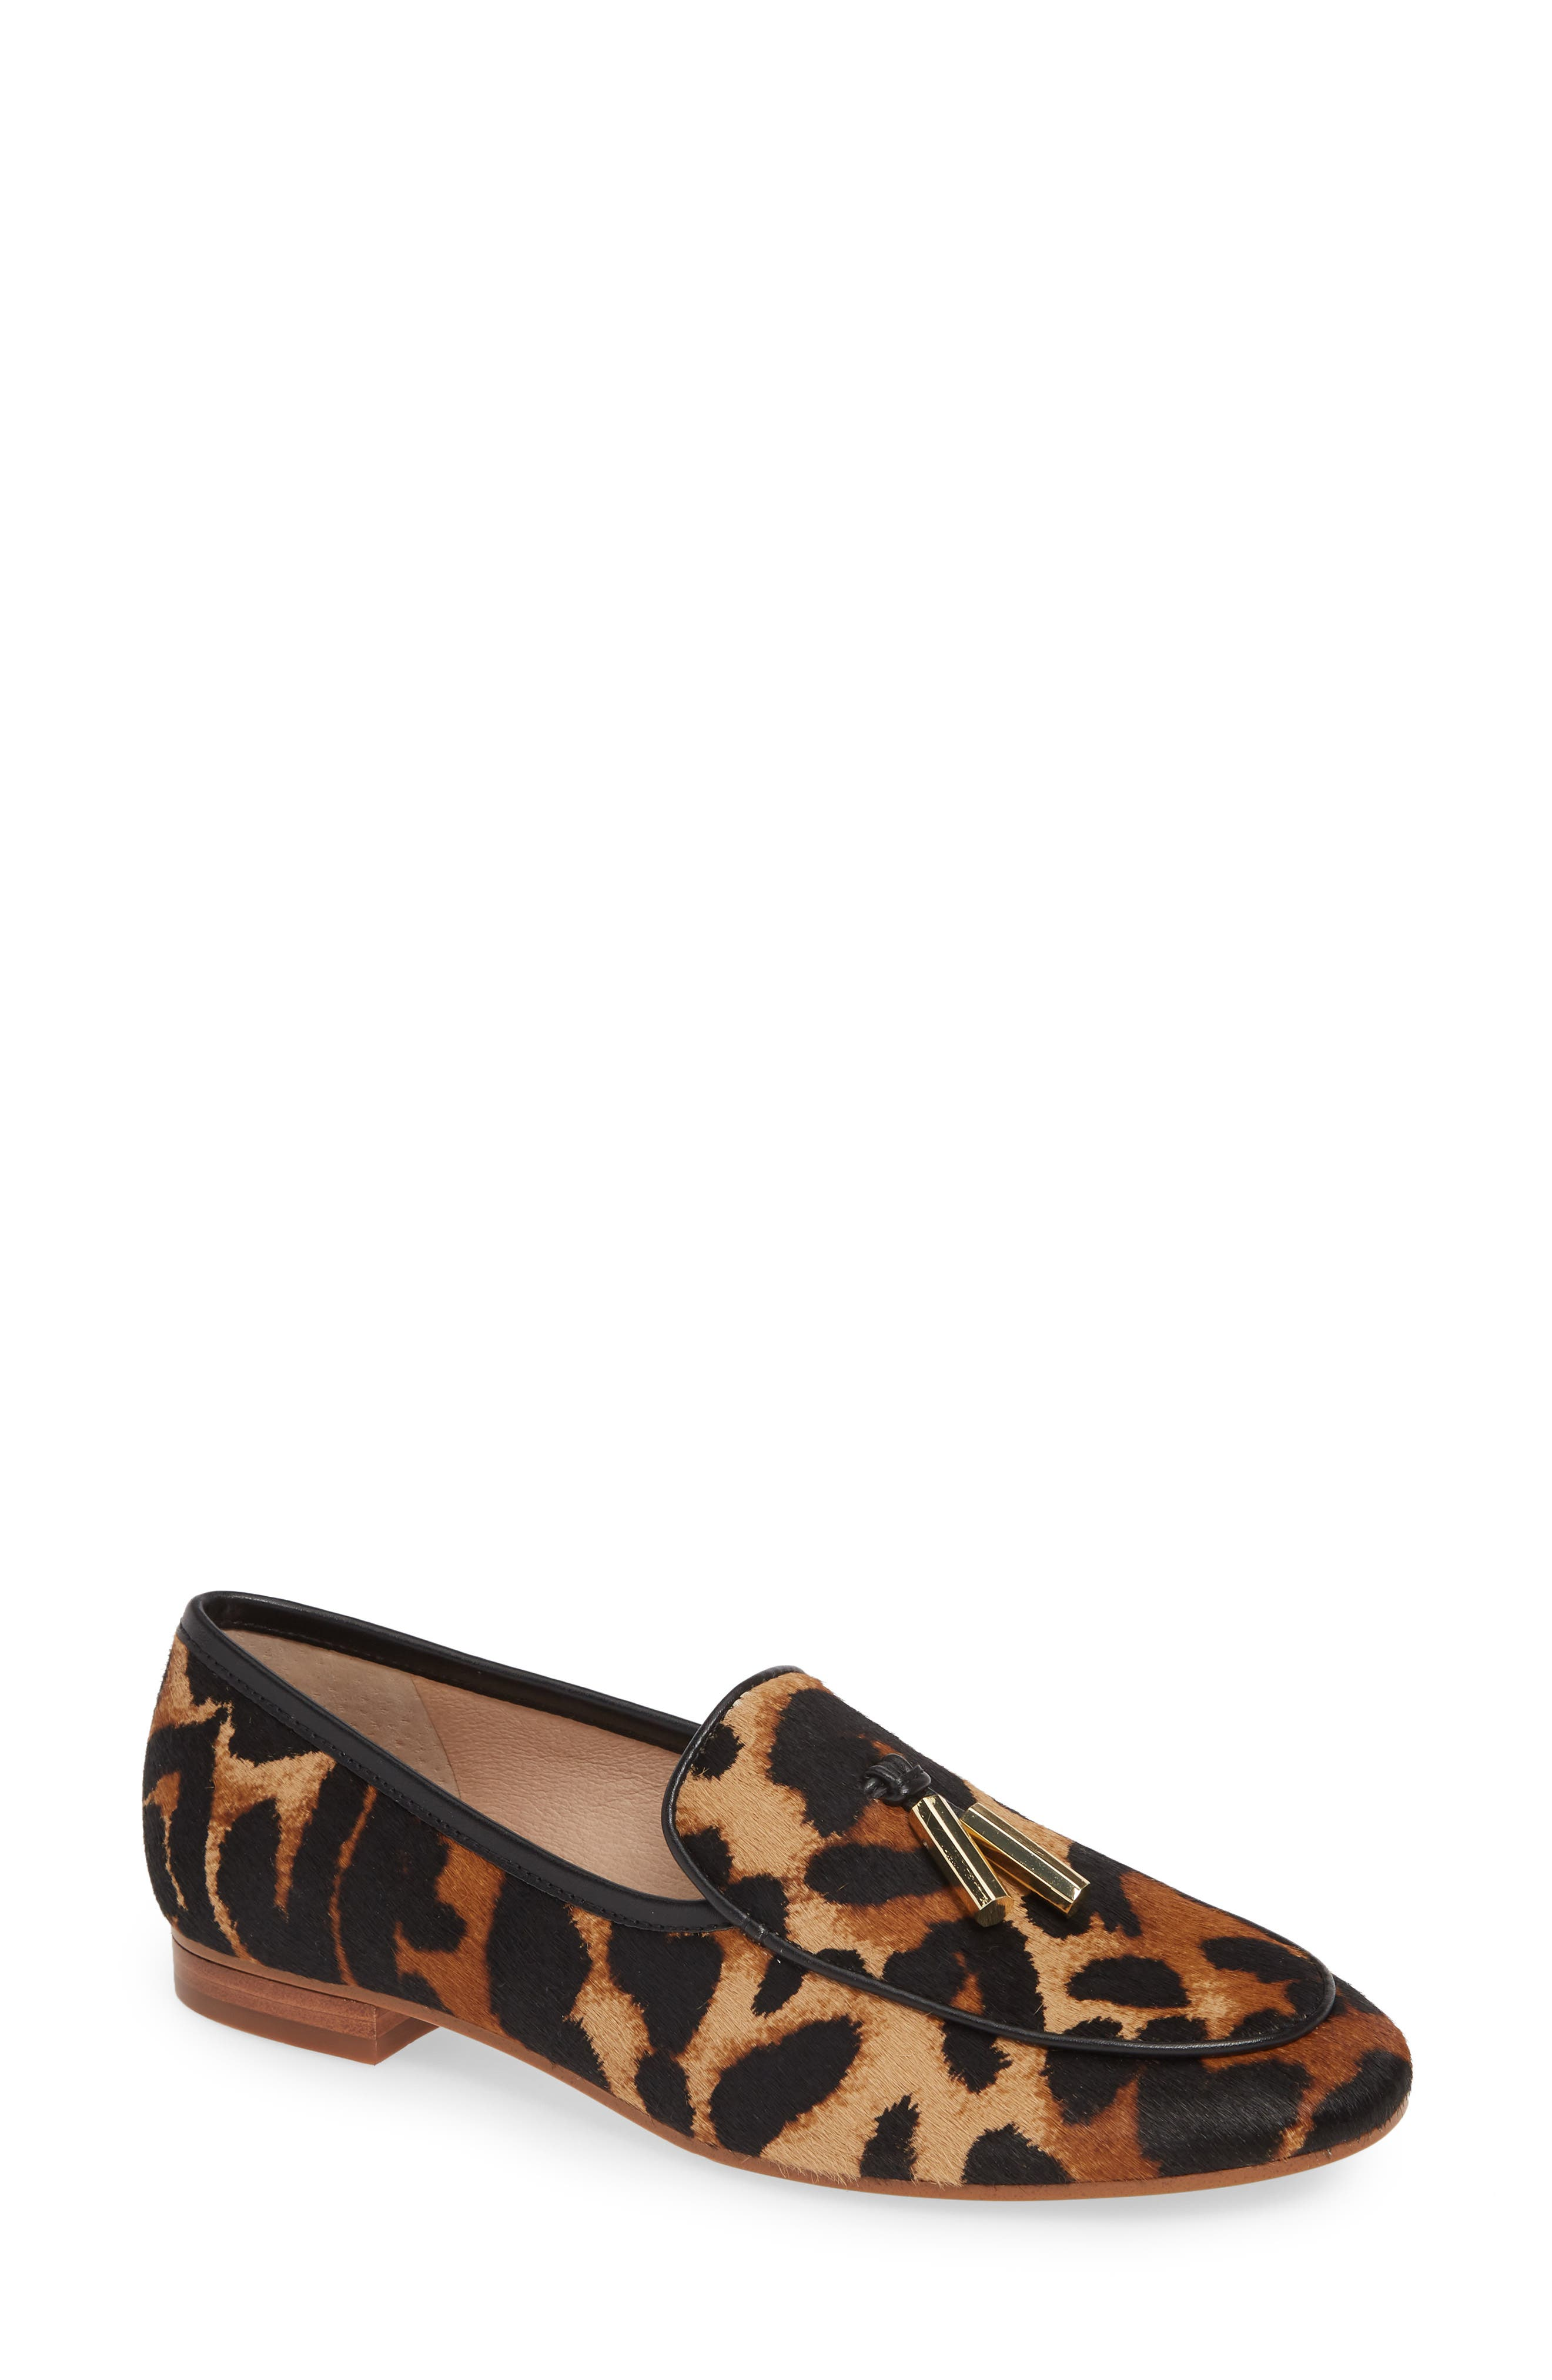 Louise et Cie Blondell Genuine Calf Hair Loafer (Women) (Nordstrom Exclusive)